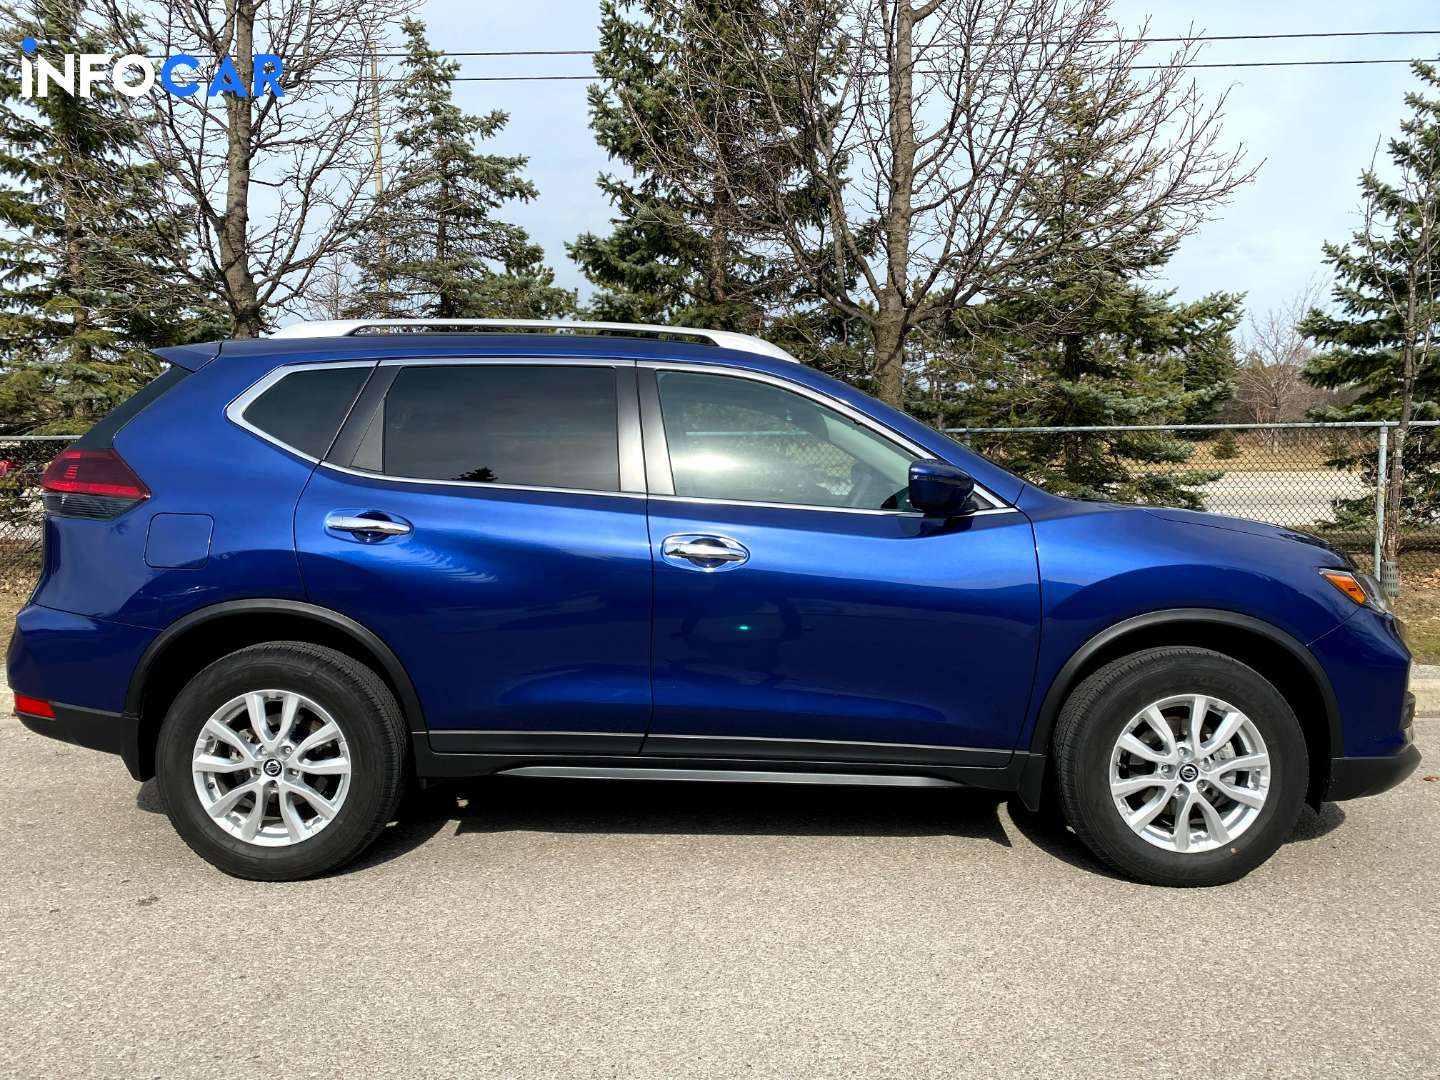 2020 Nissan Rogue Sport Special Edition - INFOCAR - Toronto's Most Comprehensive New and Used Auto Trading Platform